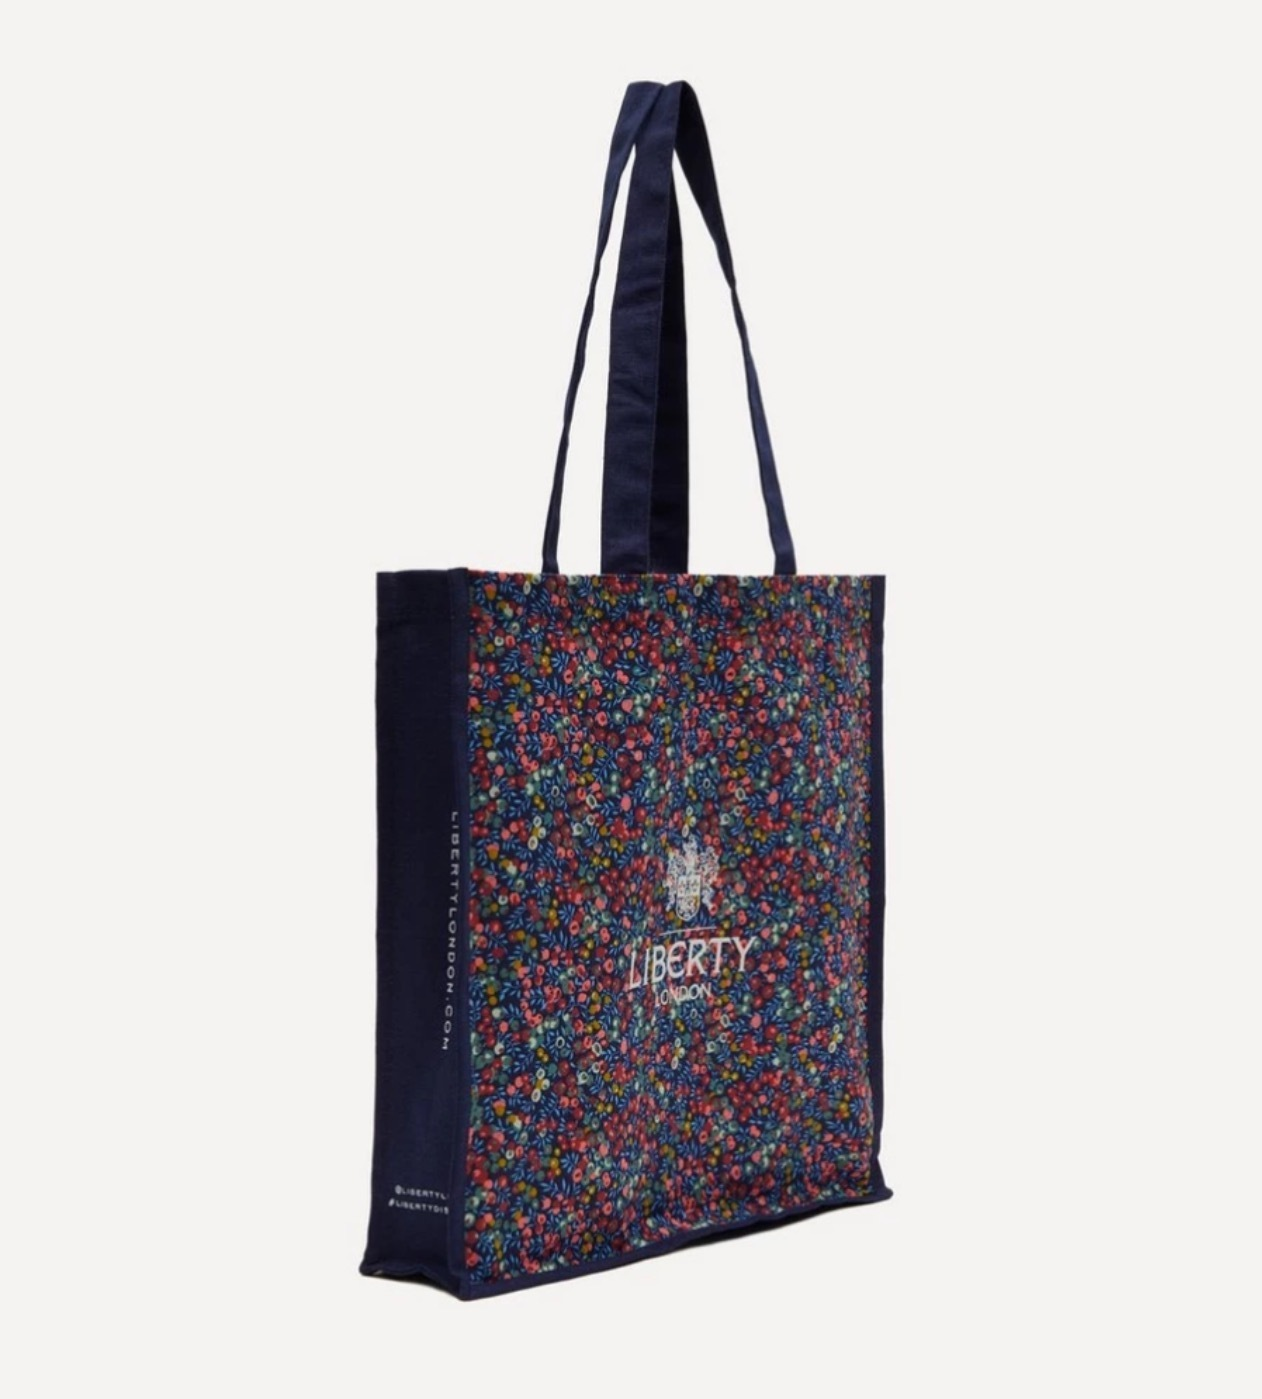 shop liberty london bags